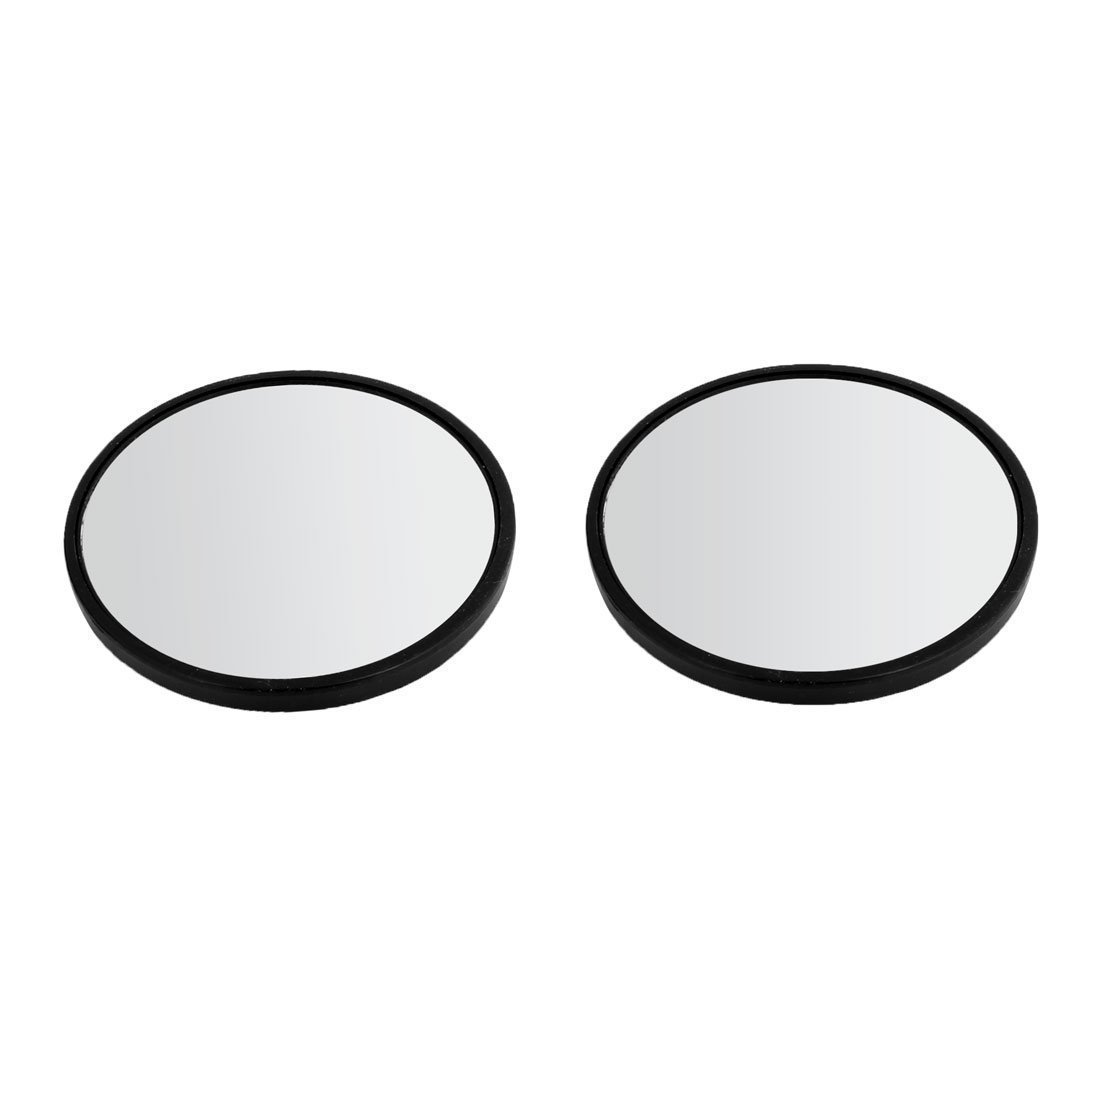 Blind Spot Mirror - TOOGOO(R) 2'' Dia Black Frame Round Rearview Blind Spot Mirror Rearmirror for Car